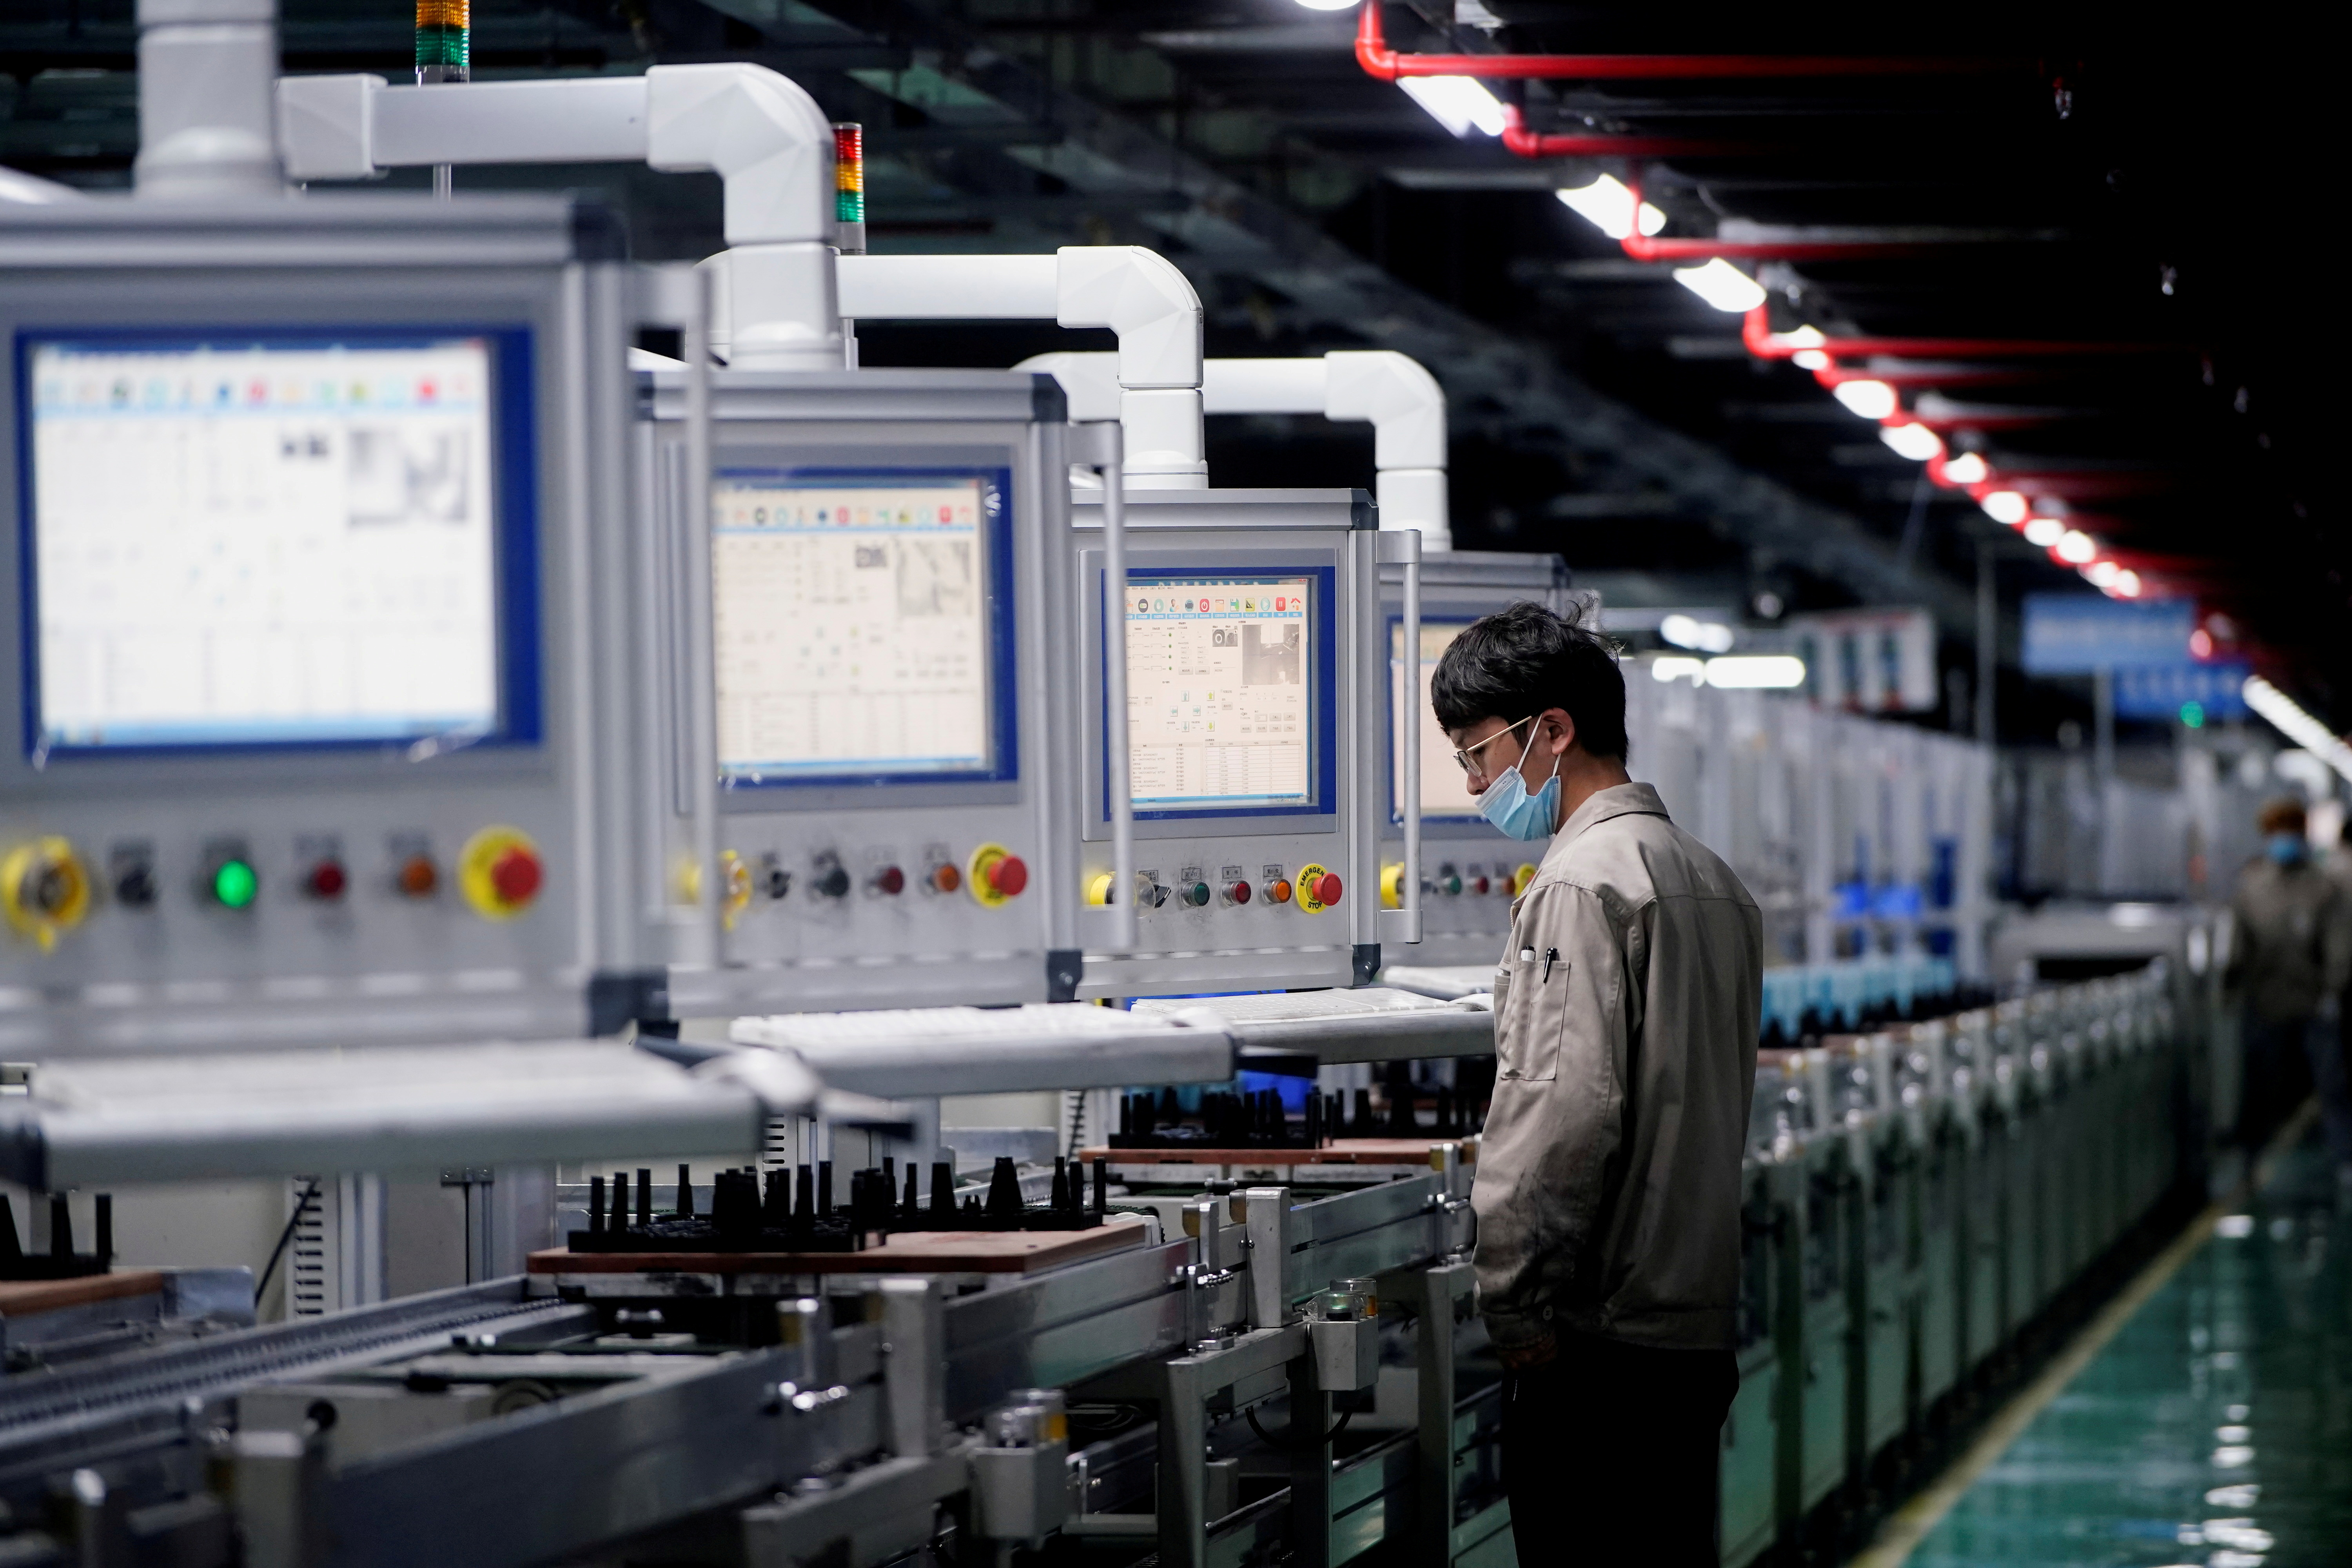 An employee works on the production line of electric vehicle (EV) battery manufacturer Octillion in Hefei, Anhui province, China March 30, 2021. REUTERS/Aly Song